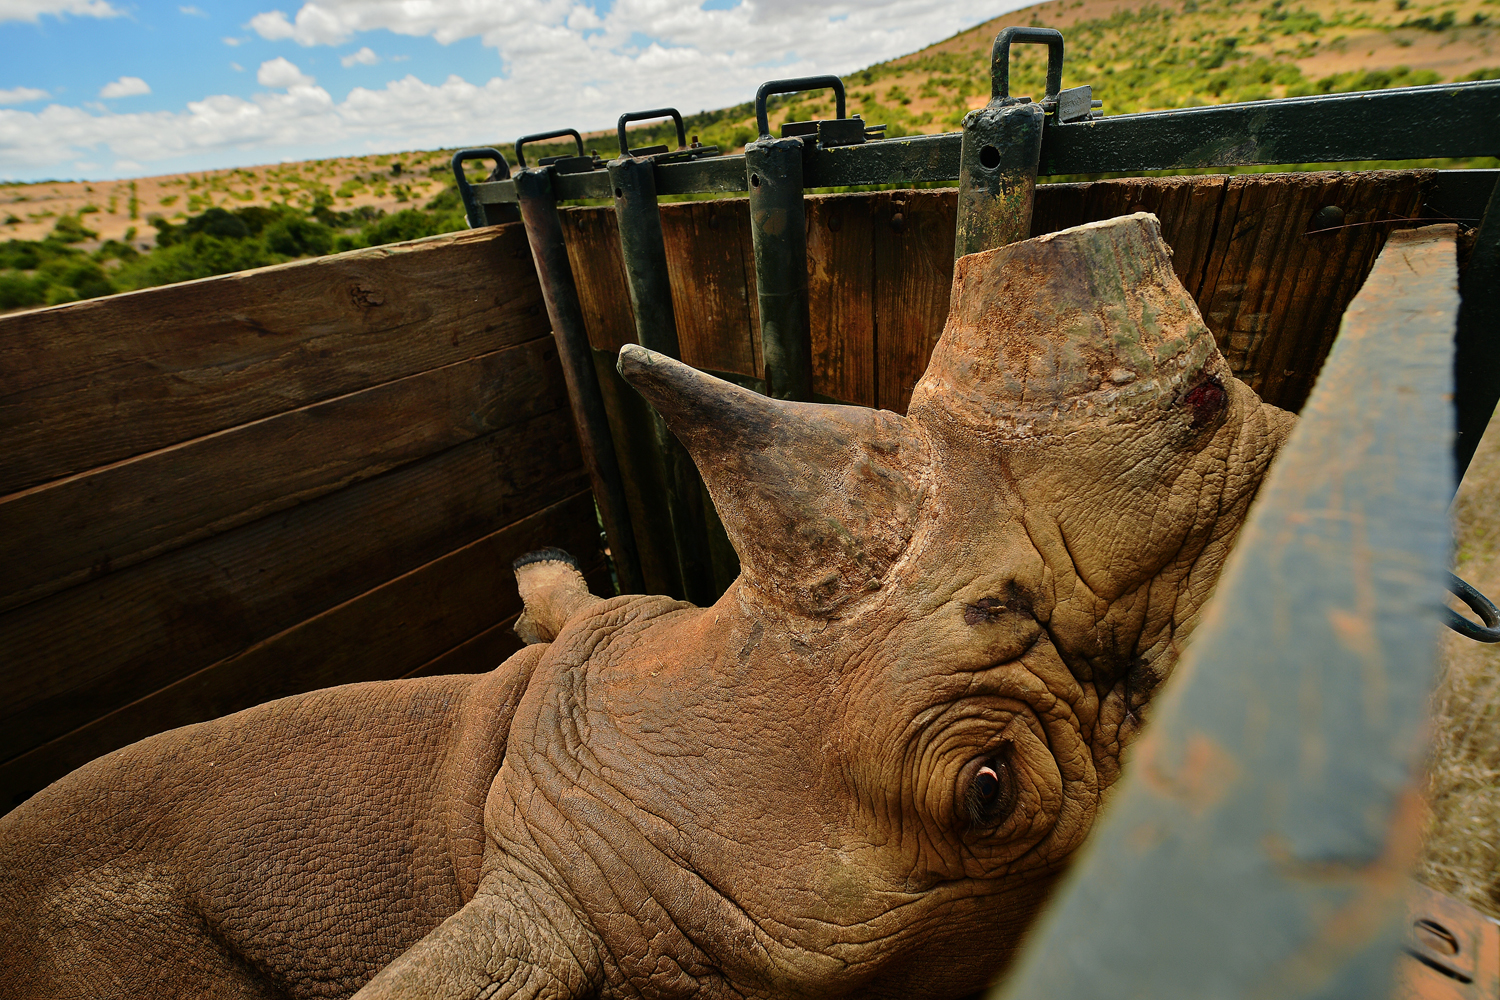 Aug. 26, 2013. A captured wild male black rhino named Sero at Lewa Wildlife looks out from its crate at Lewa conservancy in Kenya.